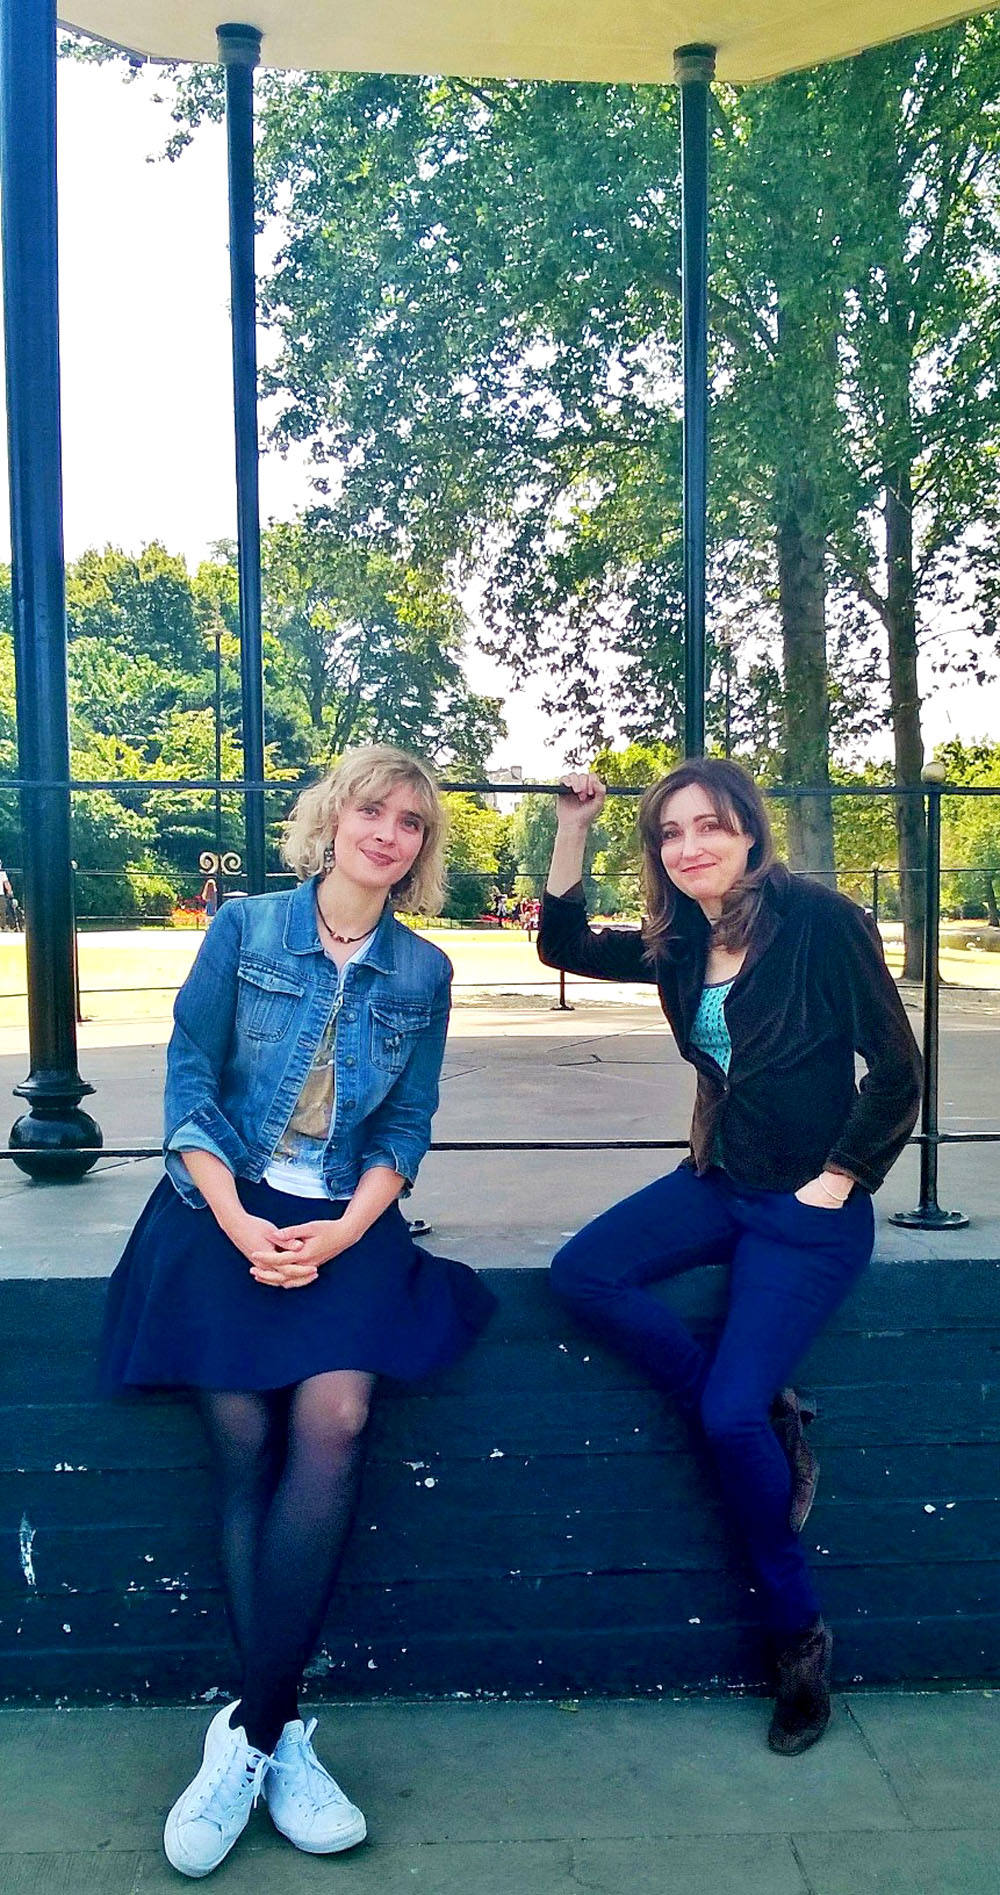 Kate Mossman and Viv Albertine in Girl in a Band: Tales from Rock 'n' Roll's Front Line